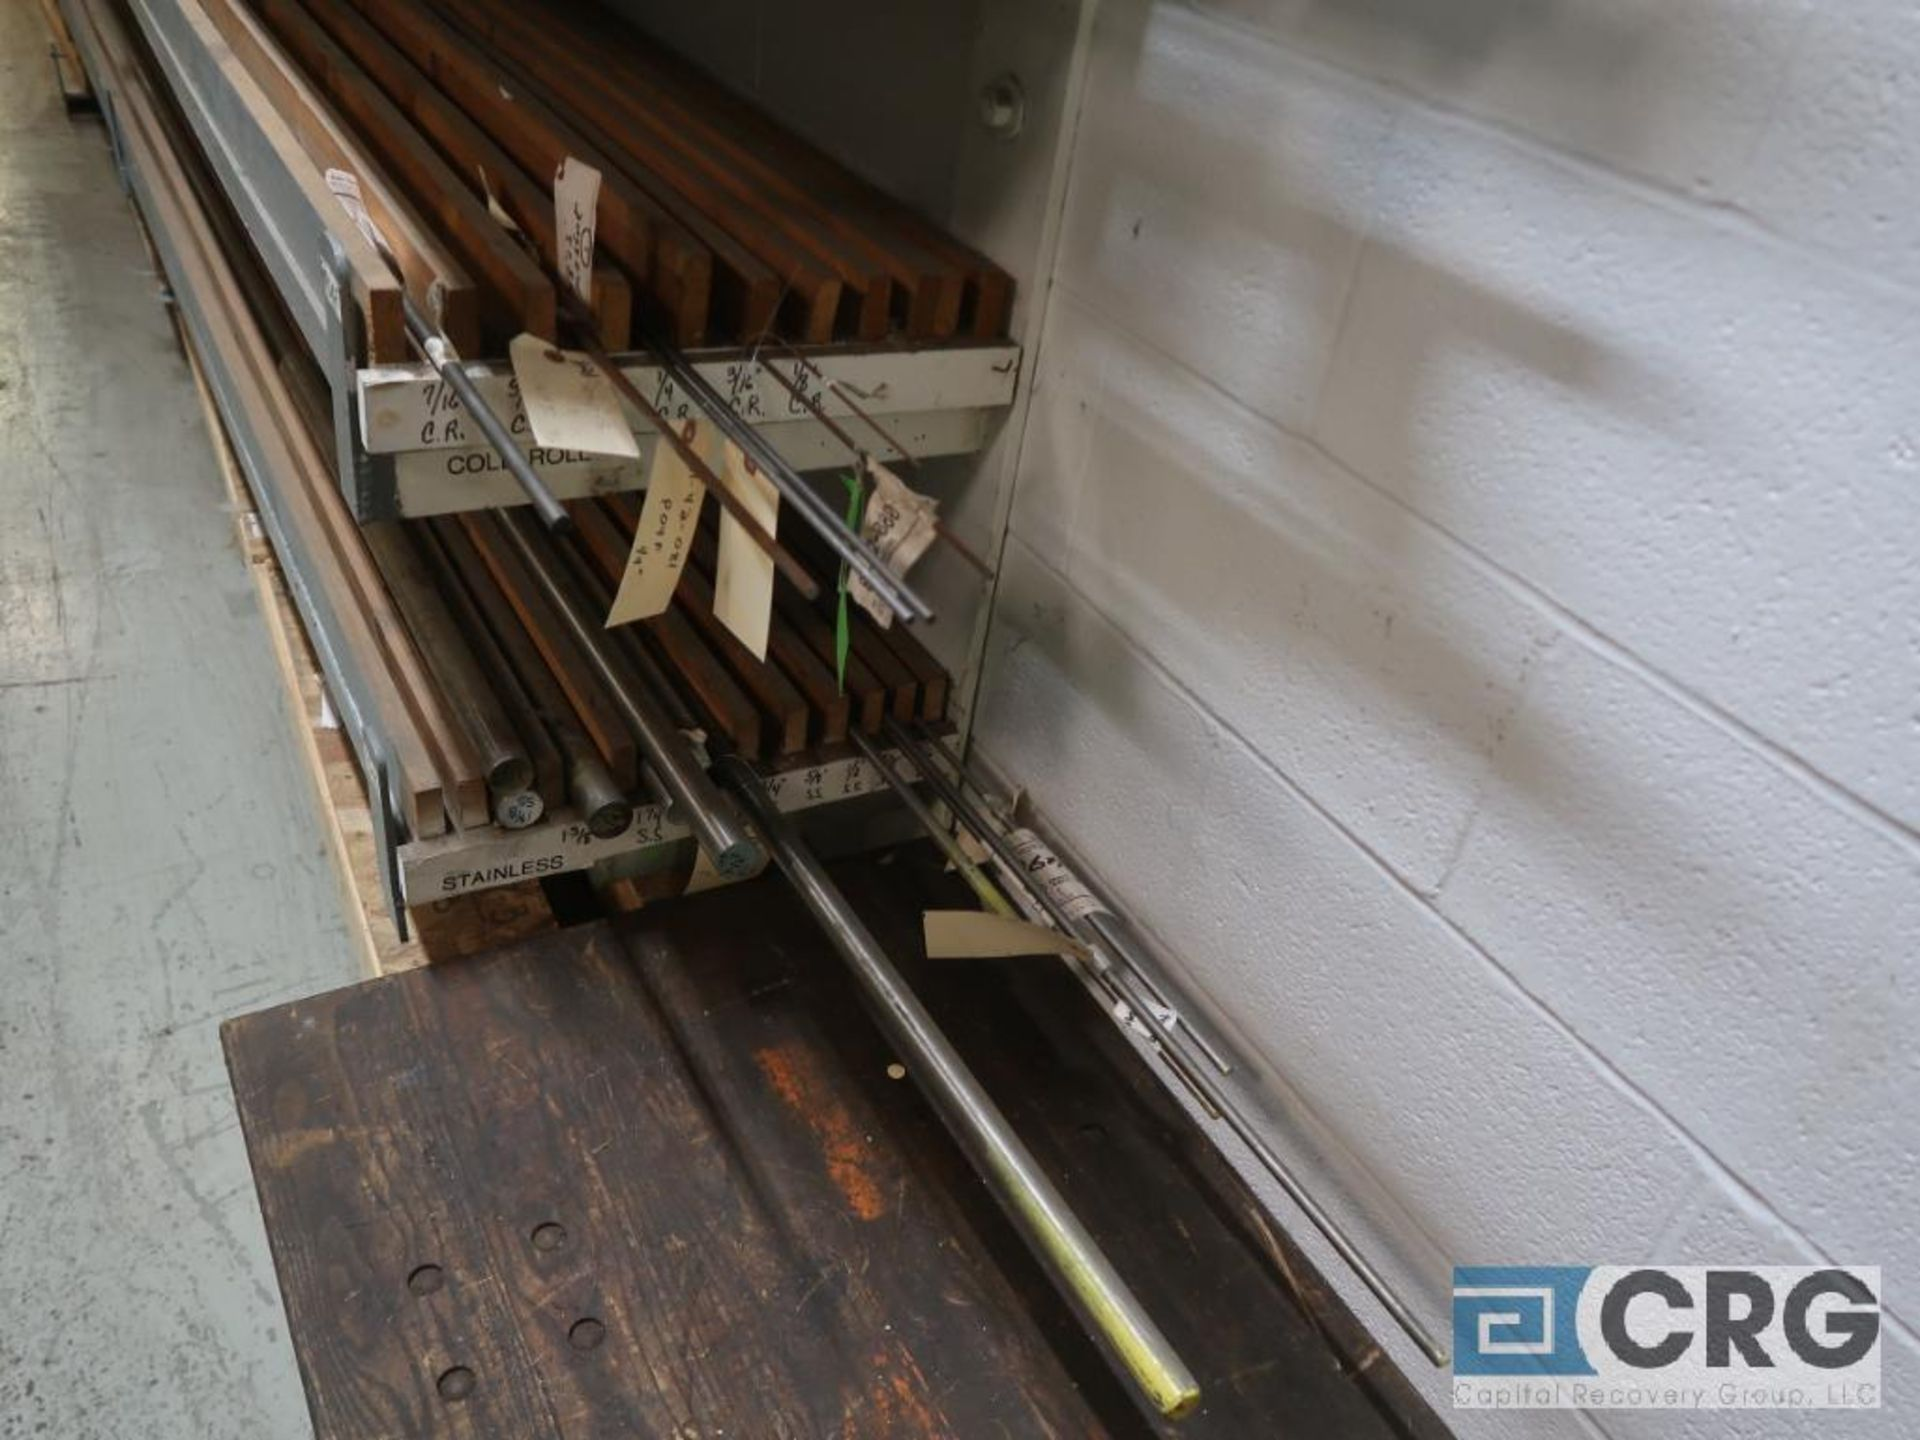 Wall mount rack with cold roll shaft, stainless tubing, key steel, and conduit pipe (Store - Image 5 of 7